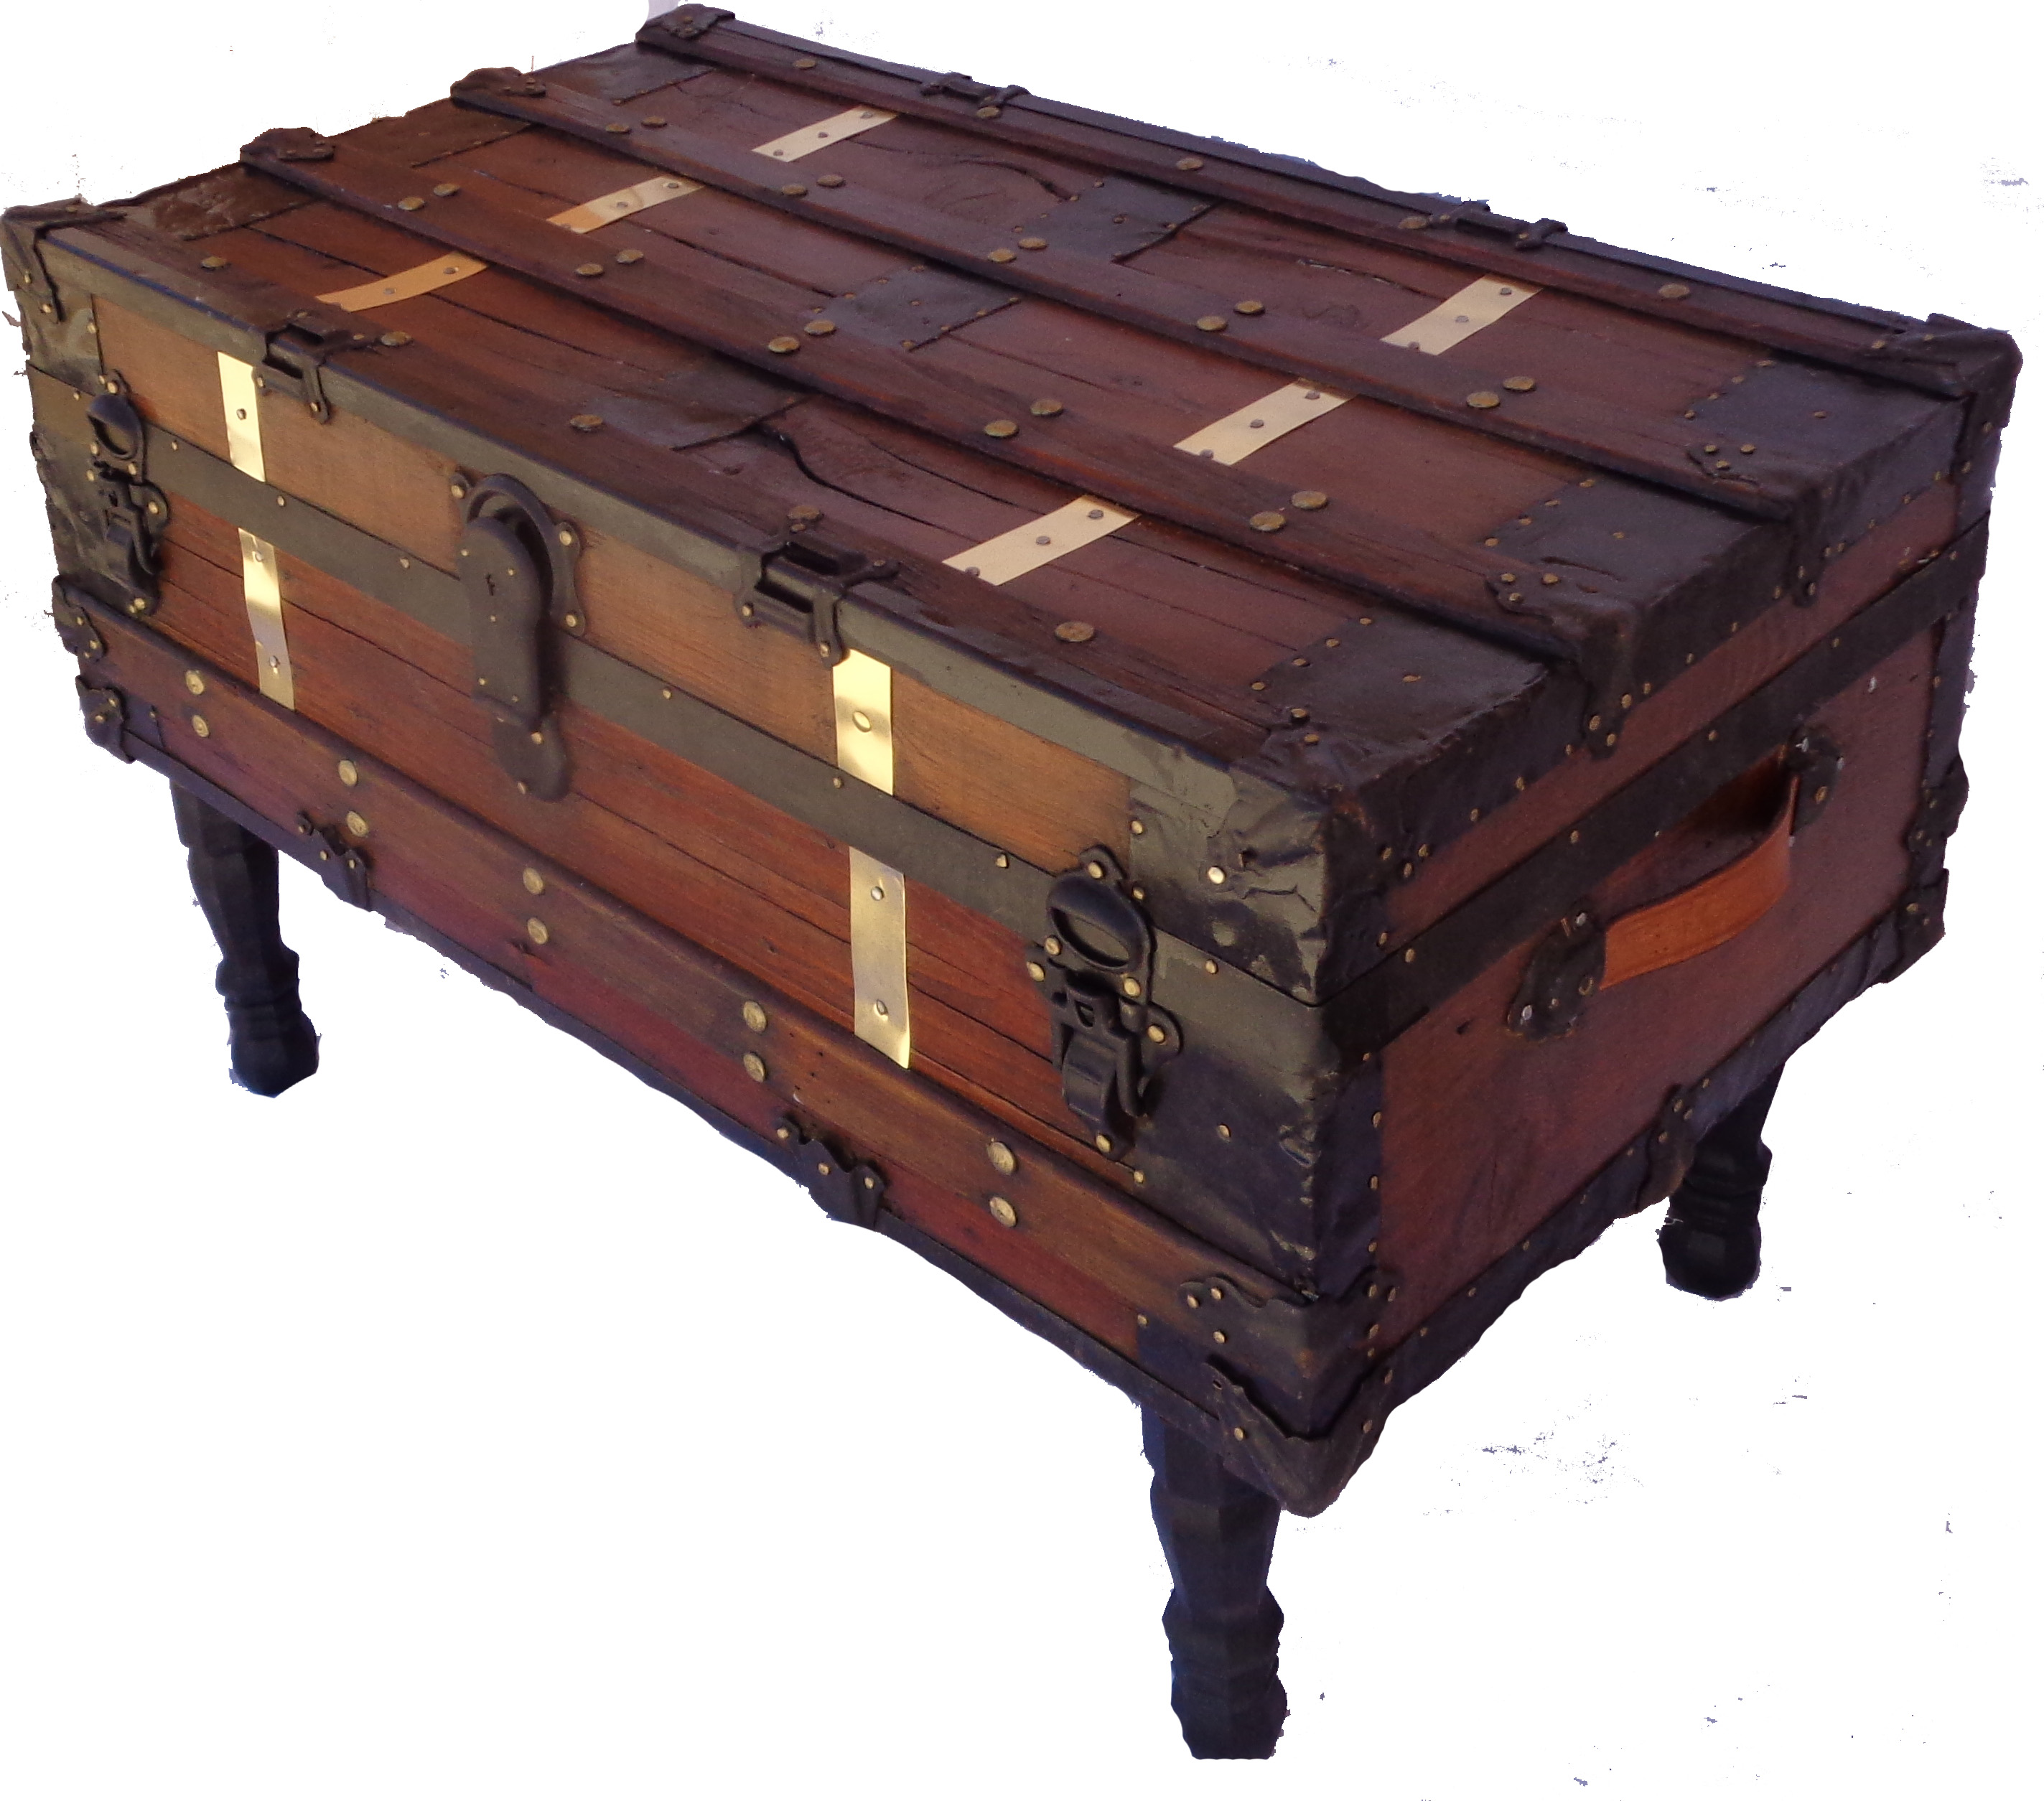 Antique Steamer Trunk Coffee Table by Antique Trunk Restoration